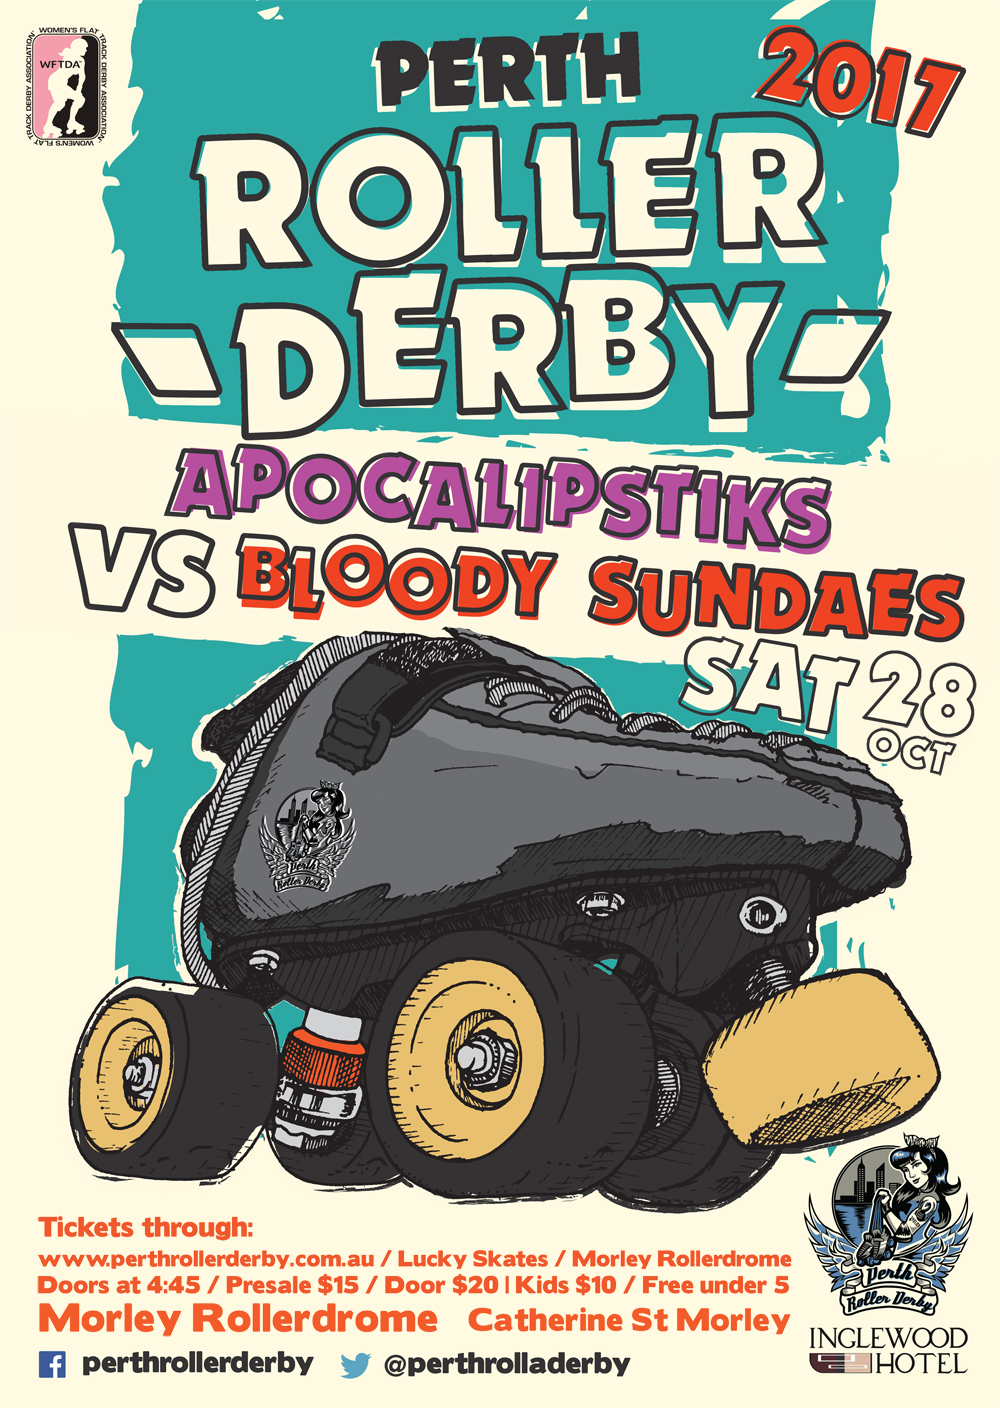 Perth Roller Derby 2017 : Game #6